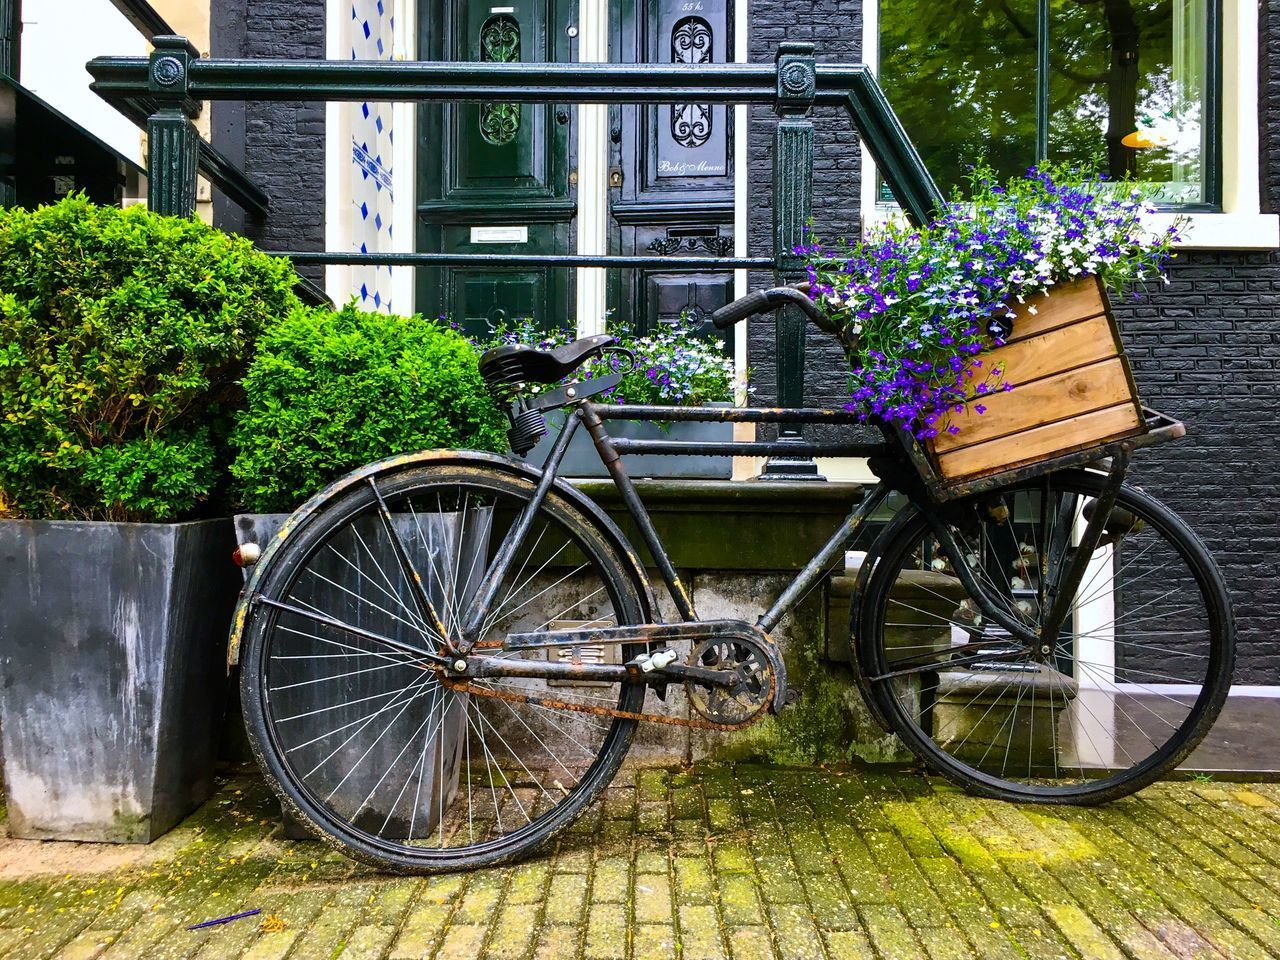 plant, building exterior, flower, nature, bicycle, flowering plant, day, growth, transportation, built structure, architecture, no people, land vehicle, outdoors, mode of transportation, green color, window, wheel, building, leaf, flower pot